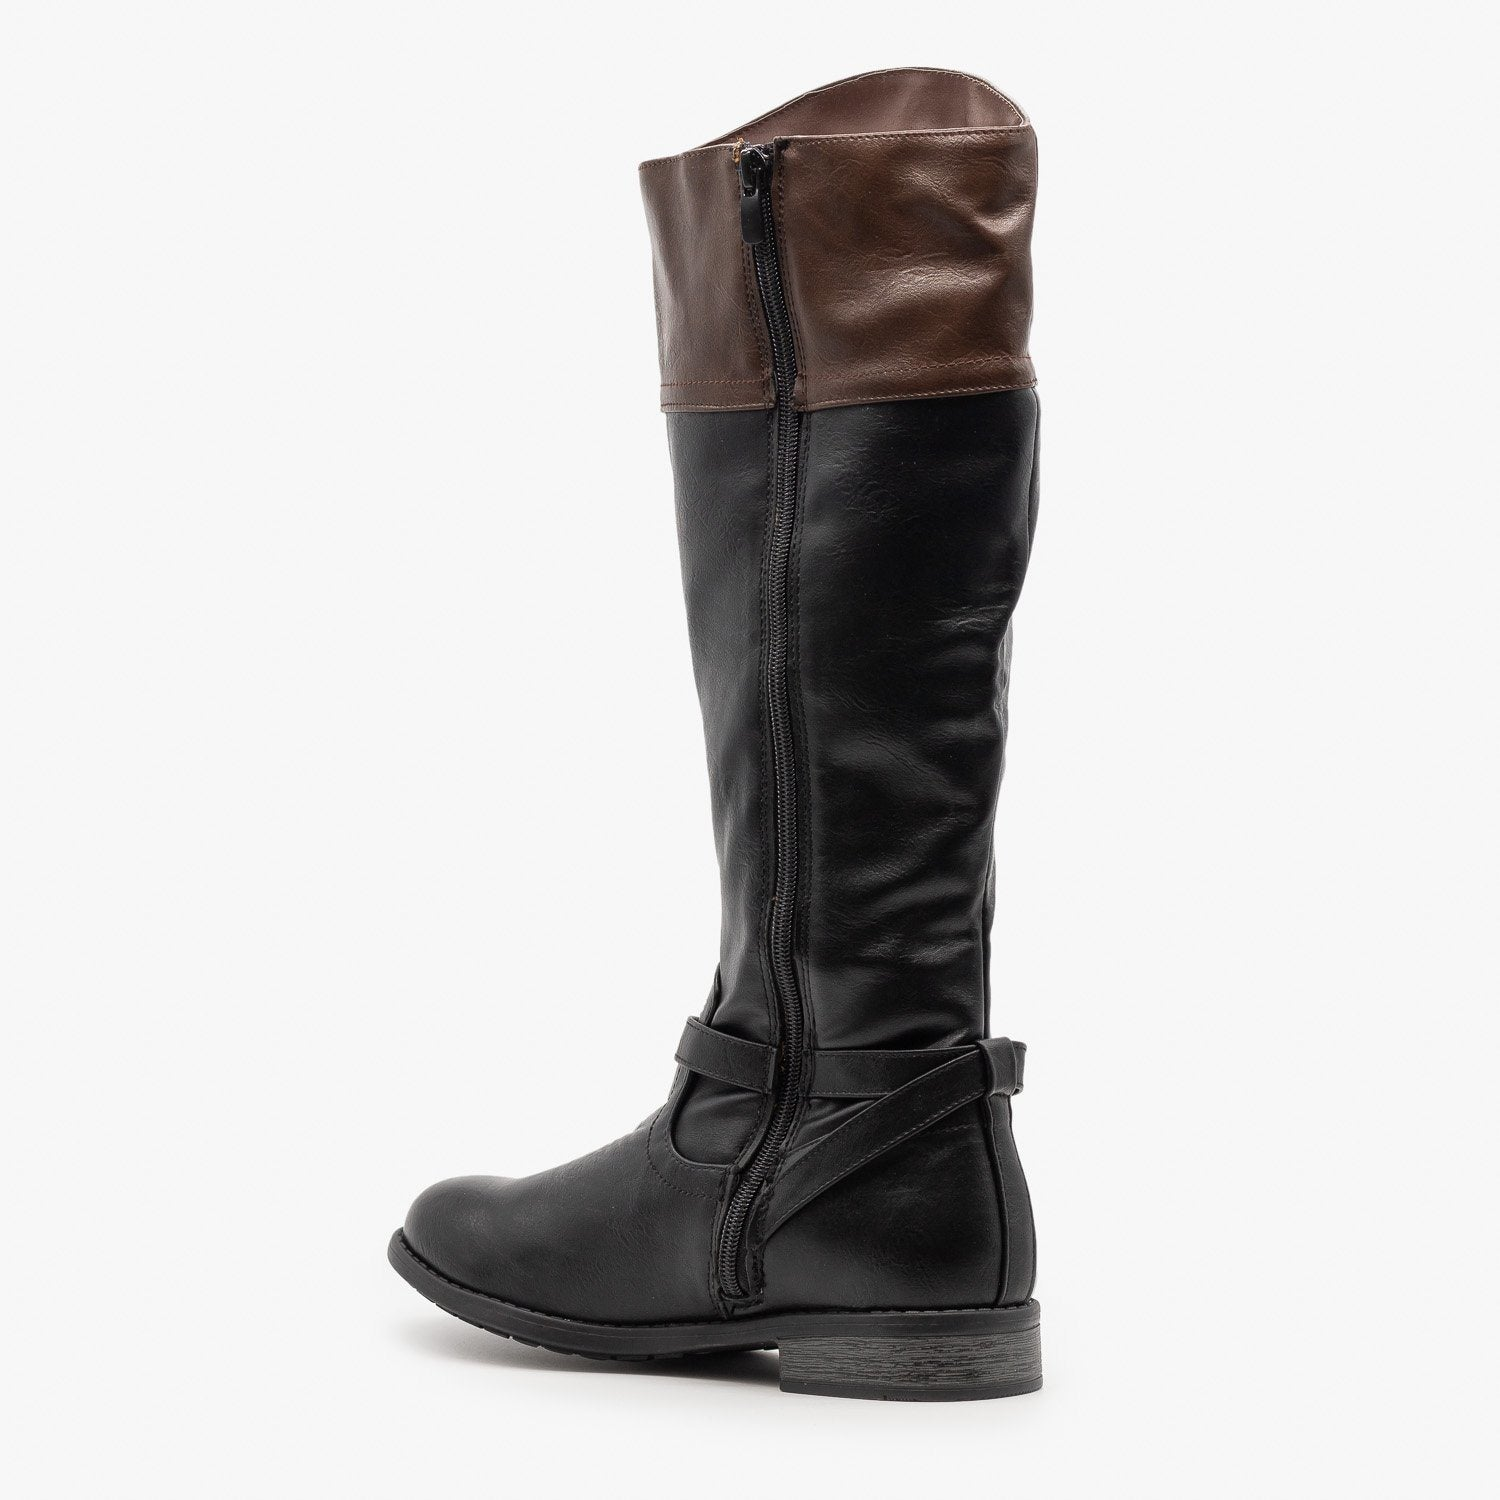 Wide Calf Riding Boots - Forever Shoes